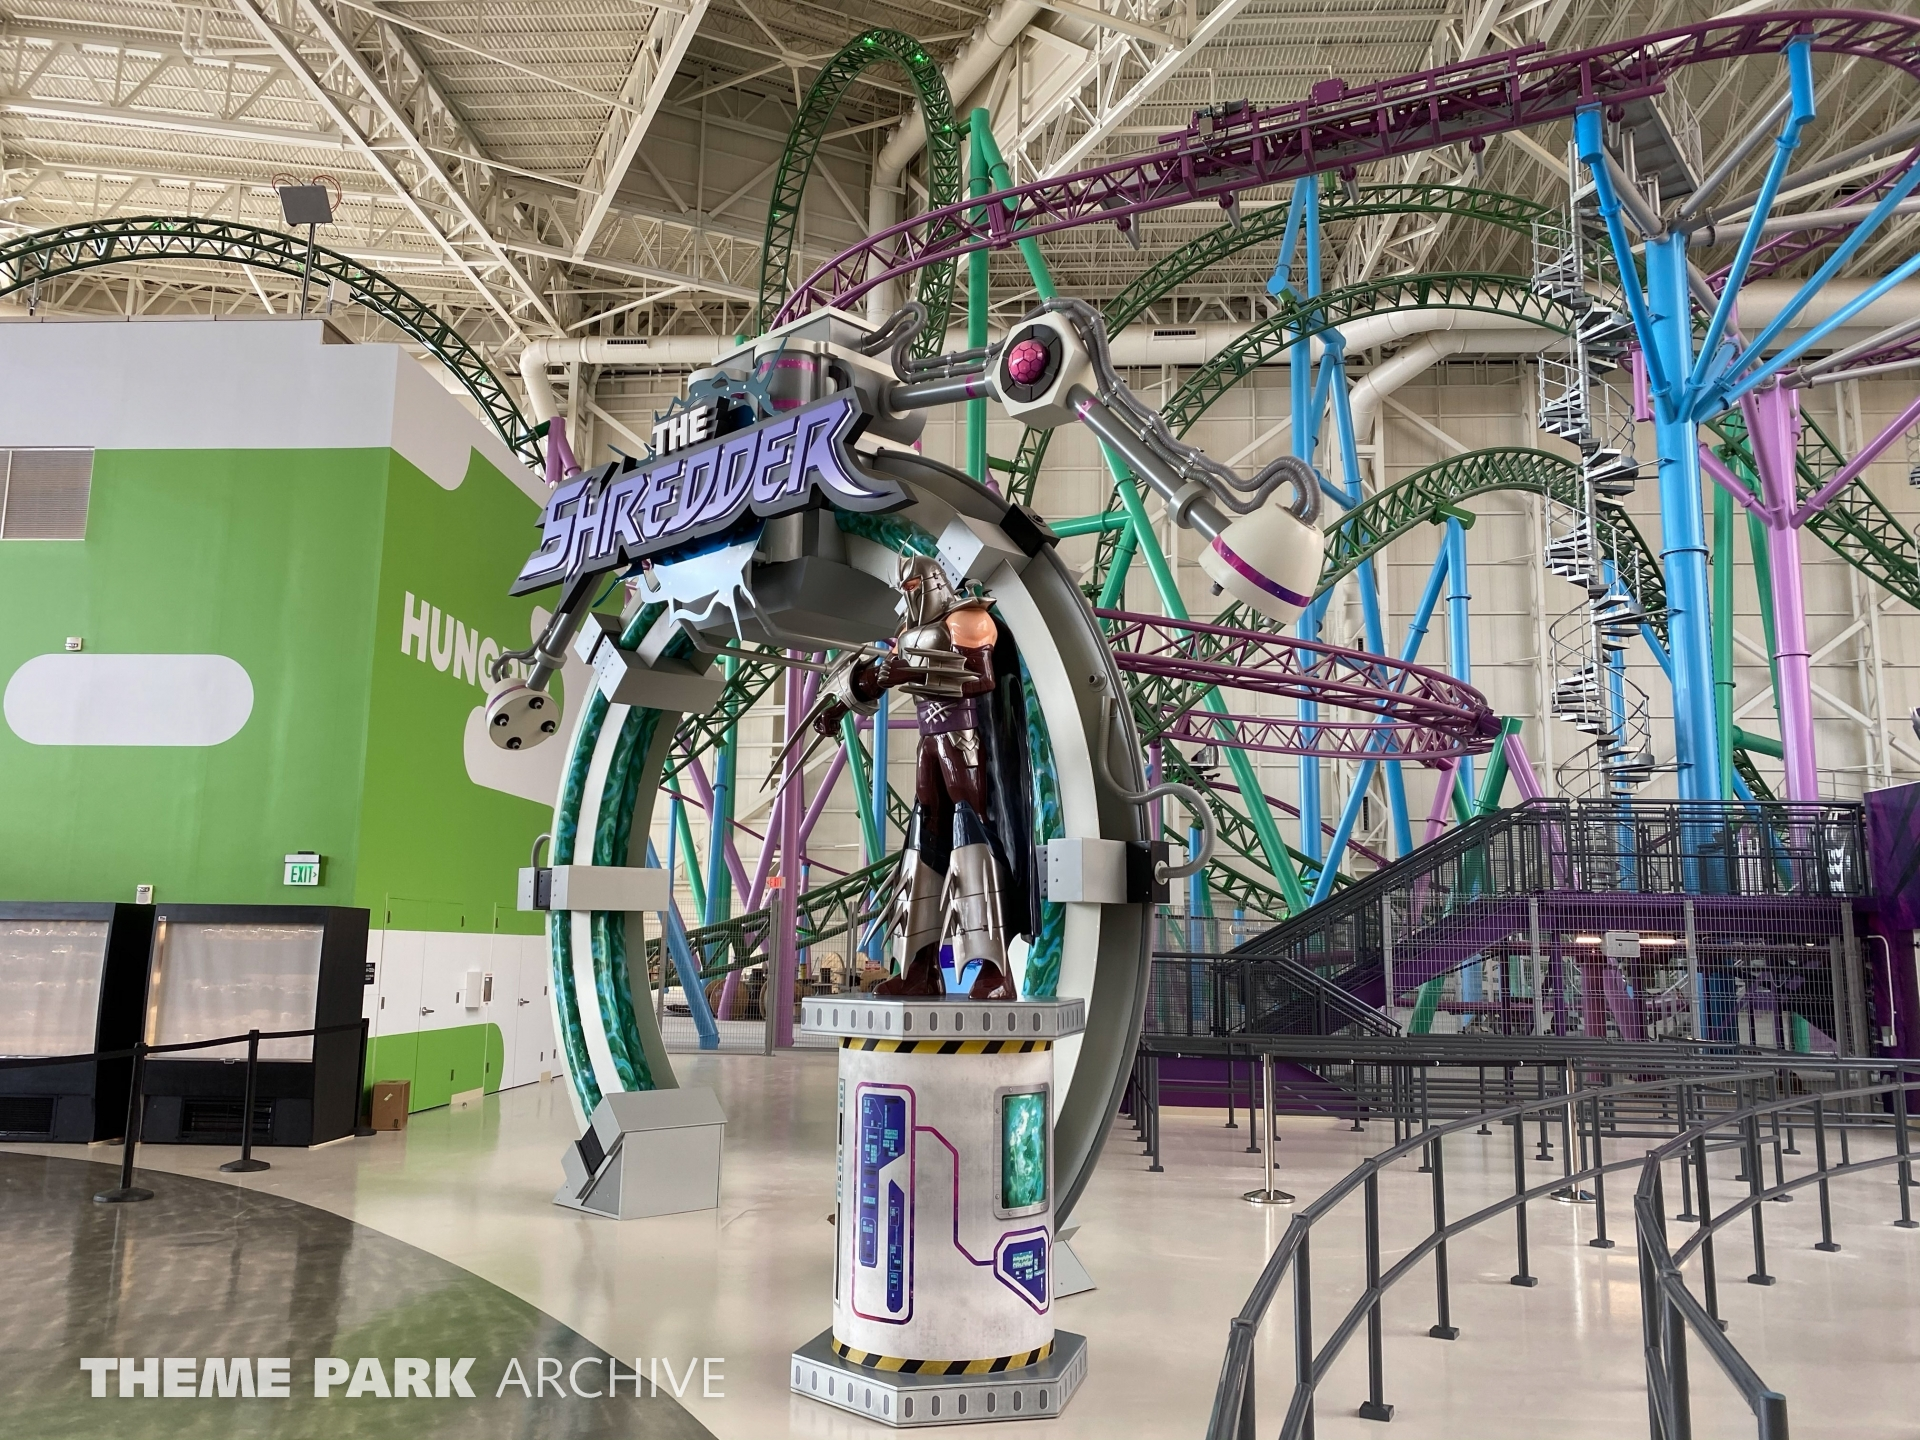 The Shredder at Nickelodeon Universe at American Dream